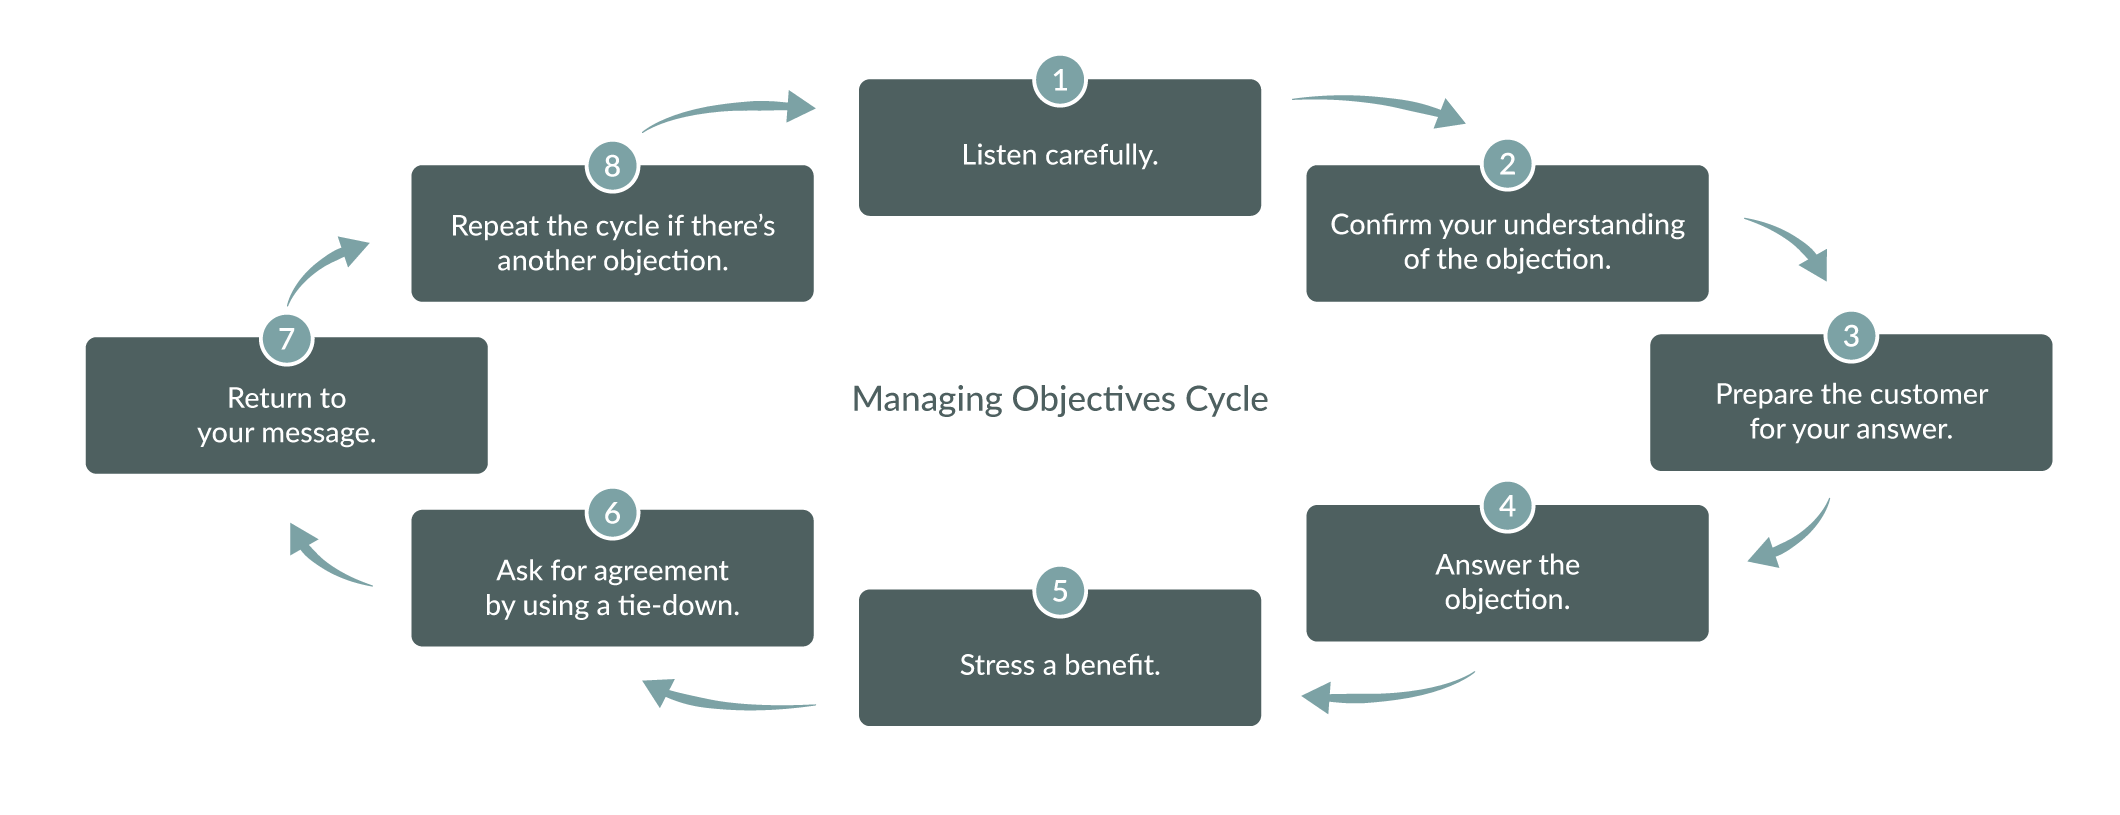 Managing Objections Cycle